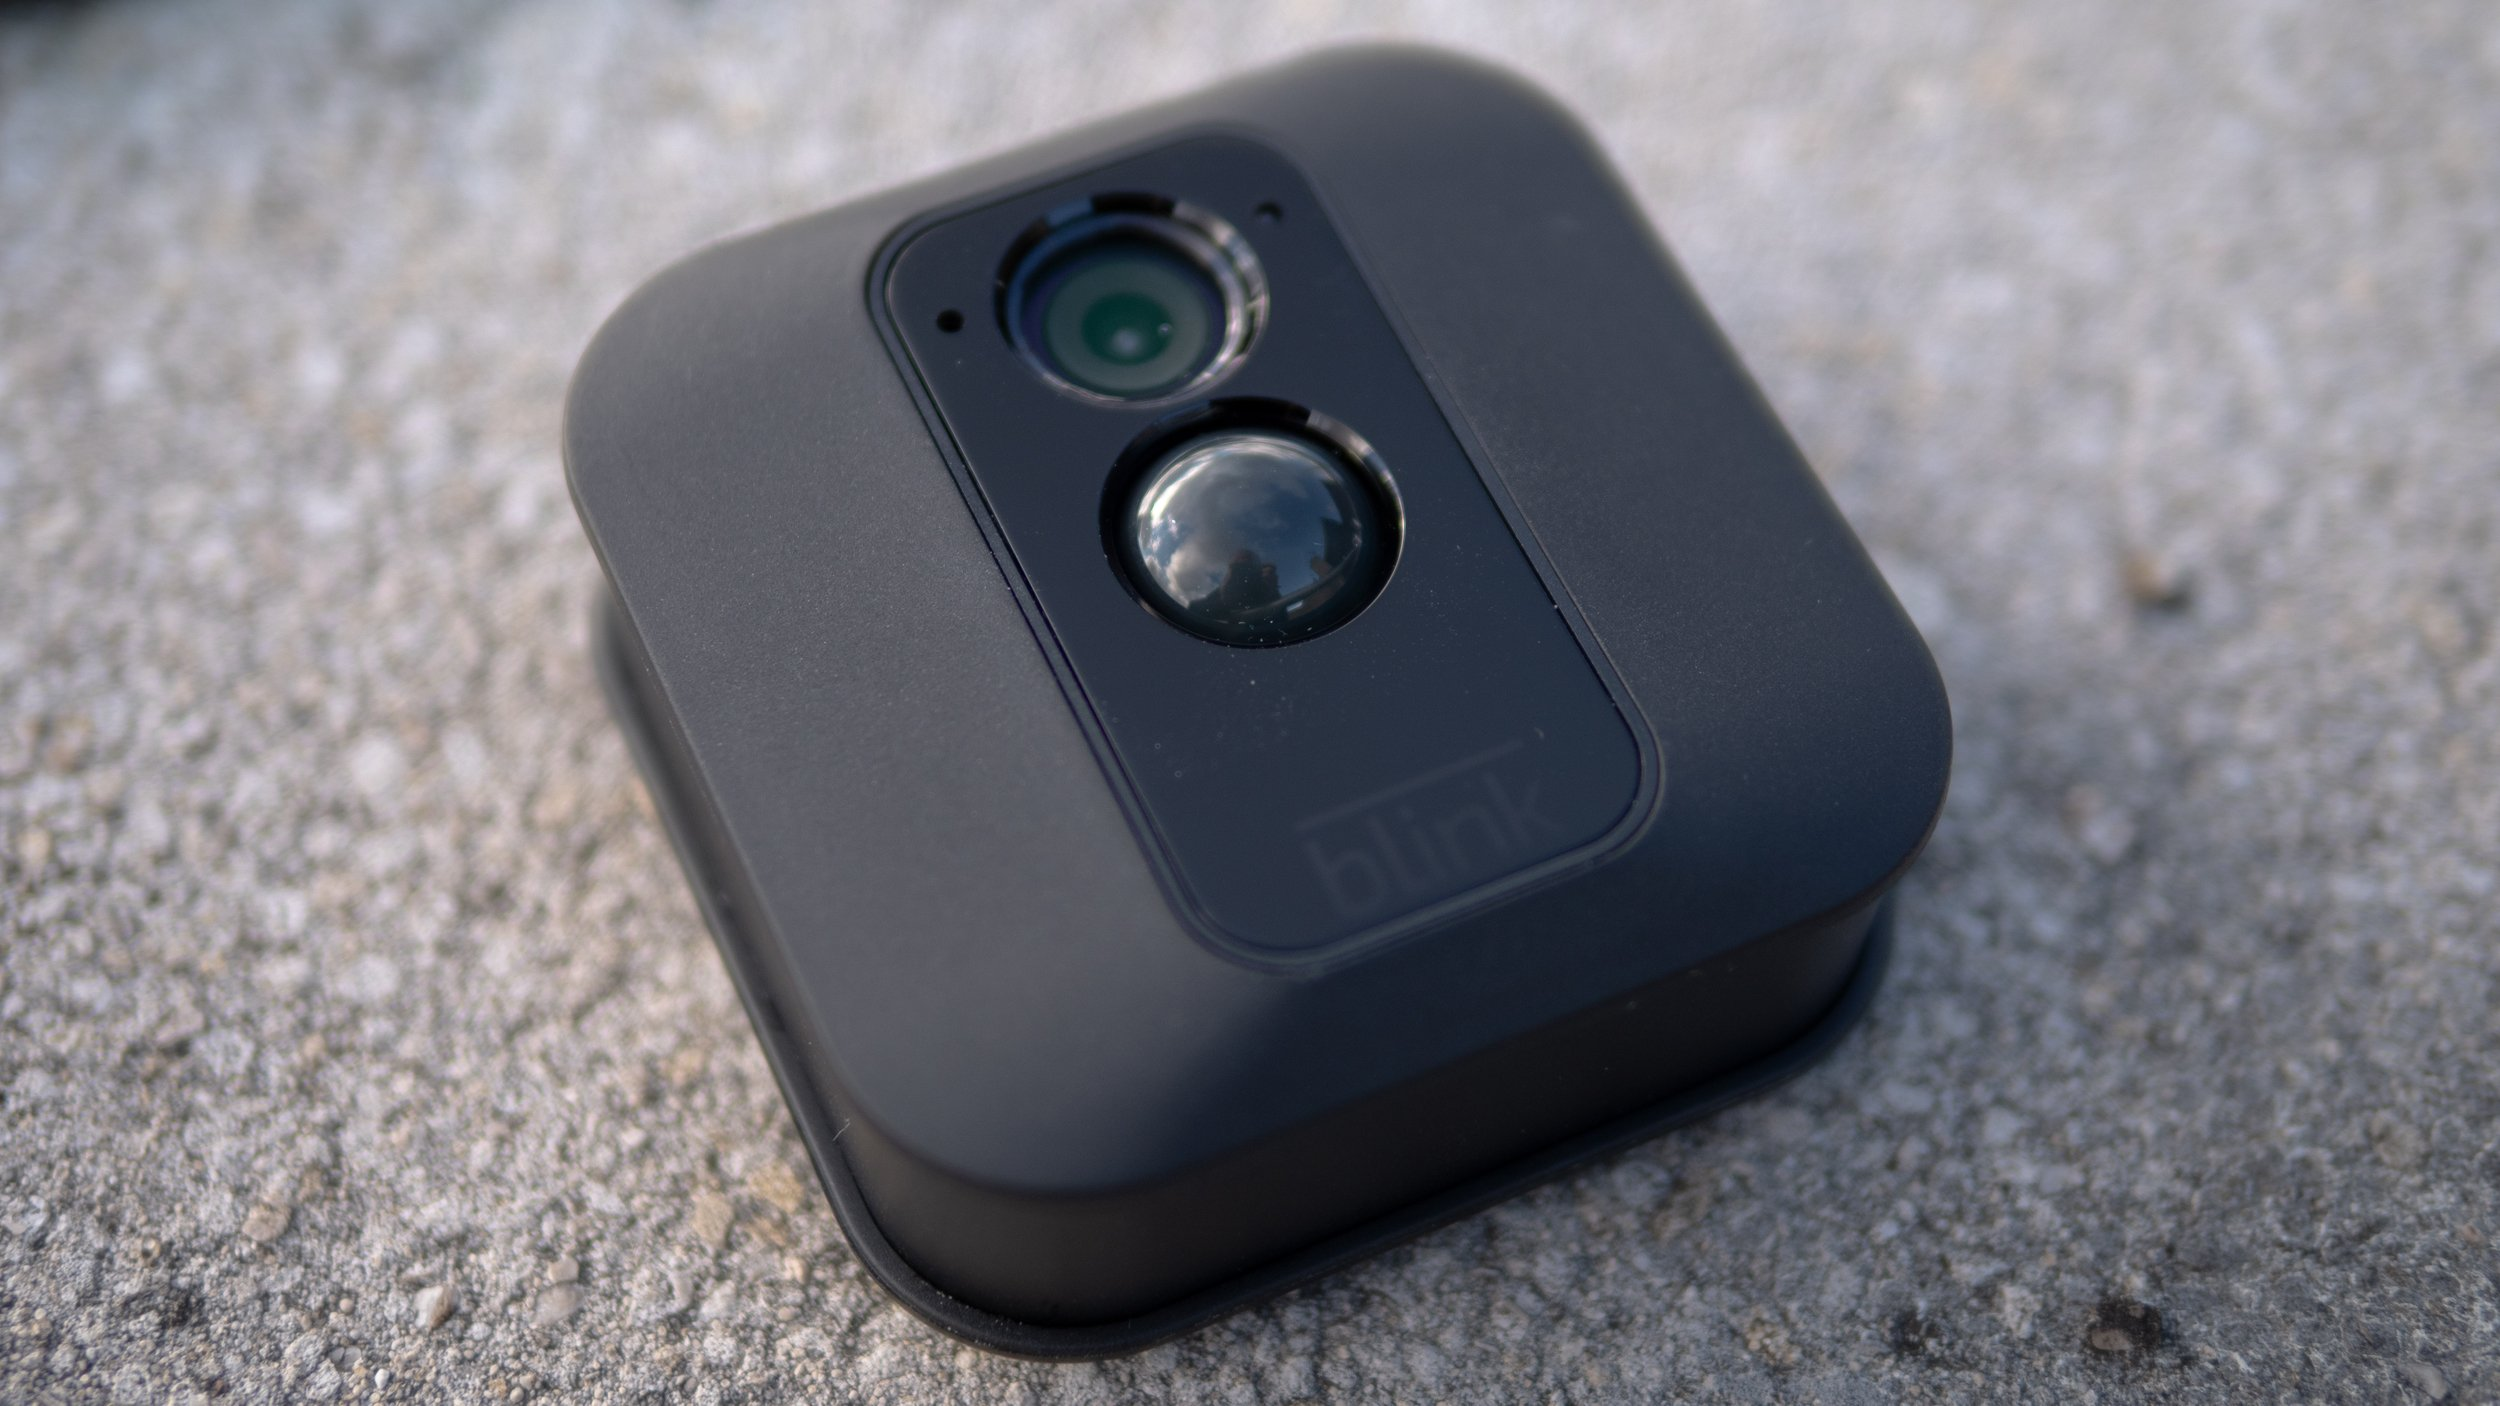 The Blink XT outdoor security camera is an absolute steal on